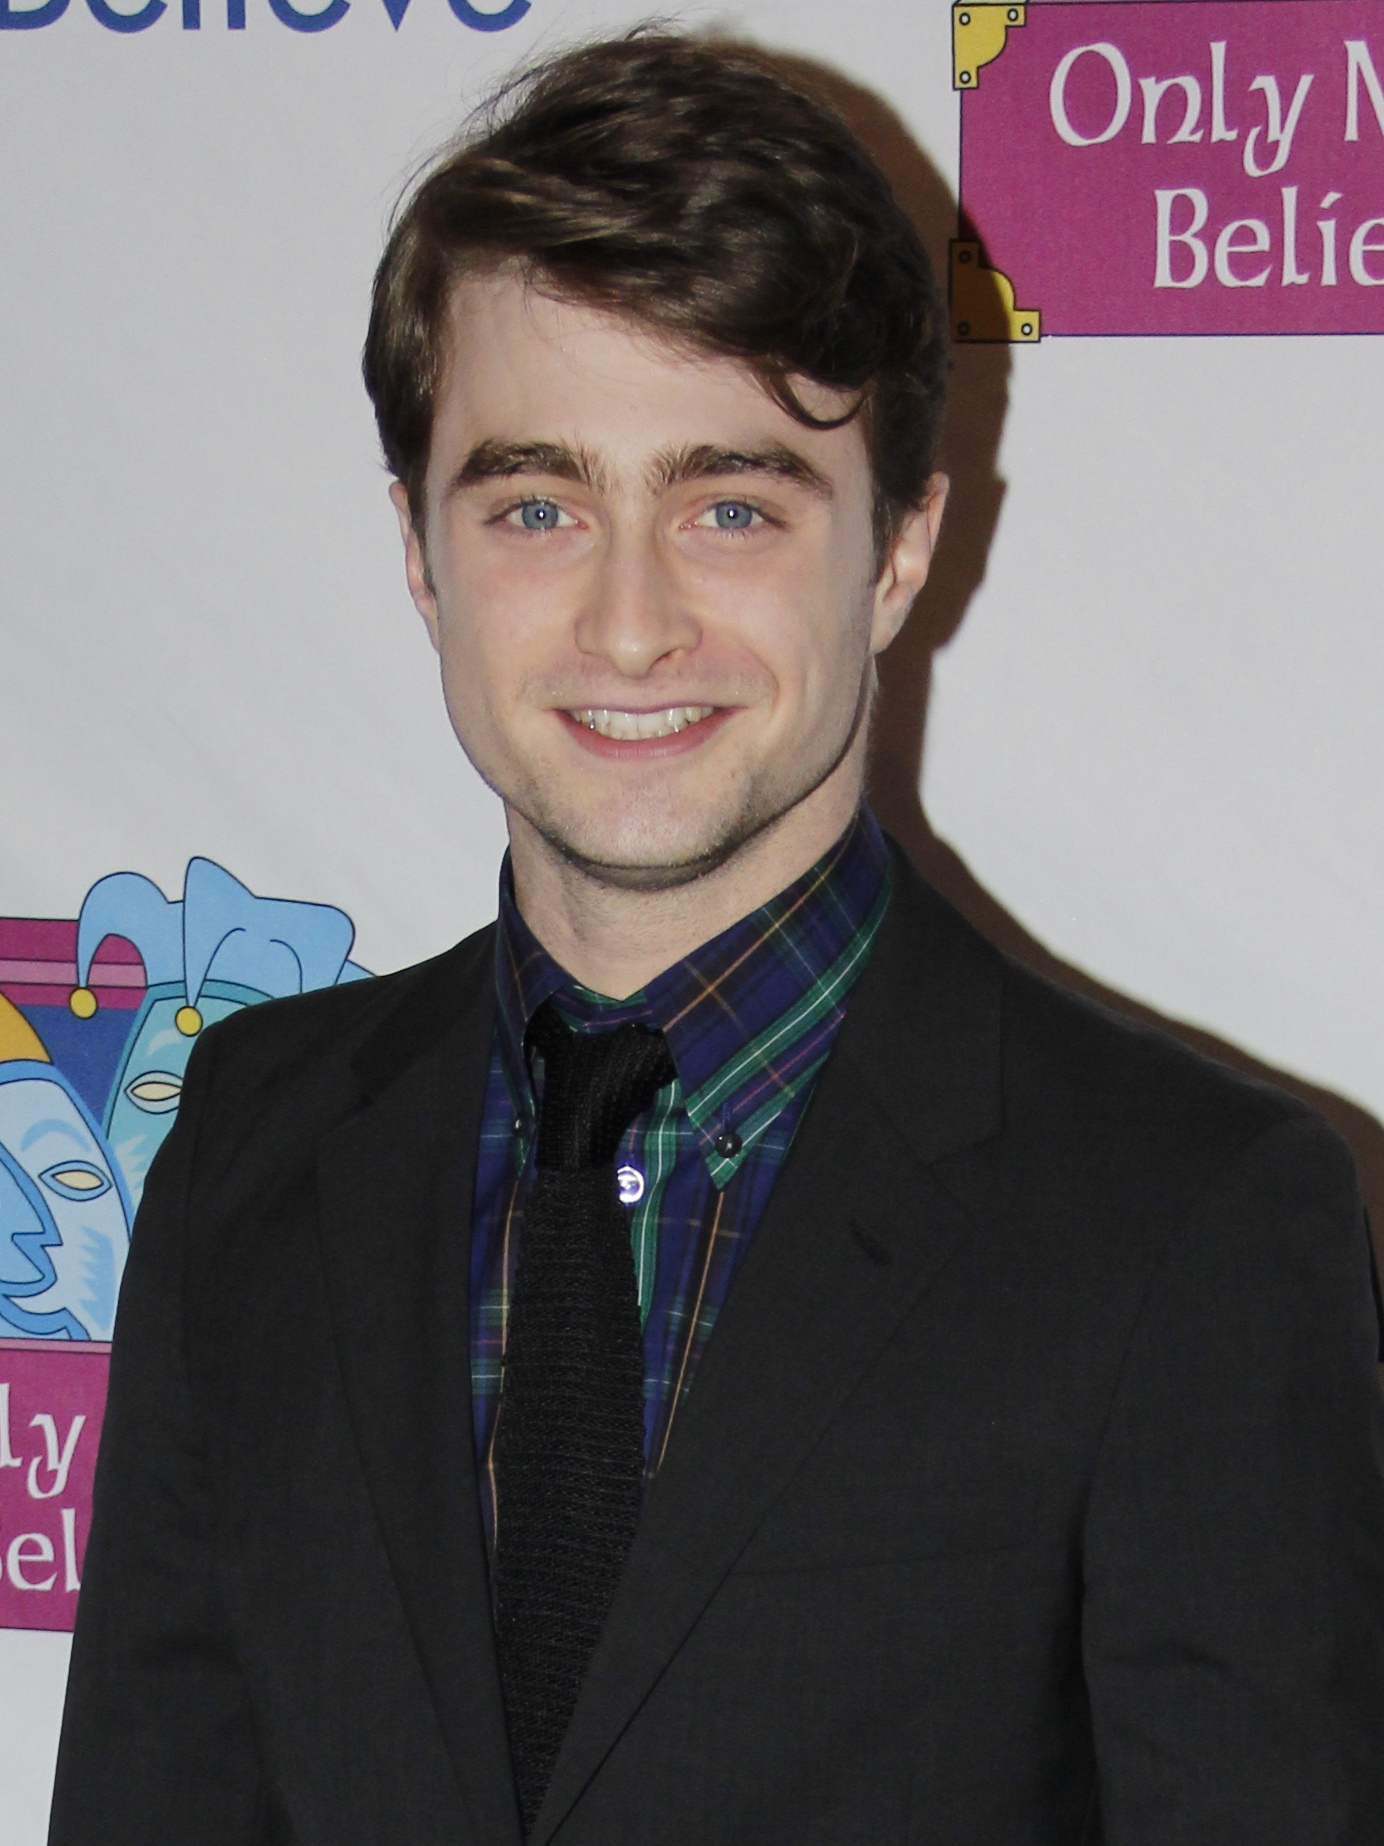 The 28-year old son of father Alan George Radcliffe and mother Marcia Gresham Radcliffe, 165 cm tall Daniel Radcliffe in 2017 photo